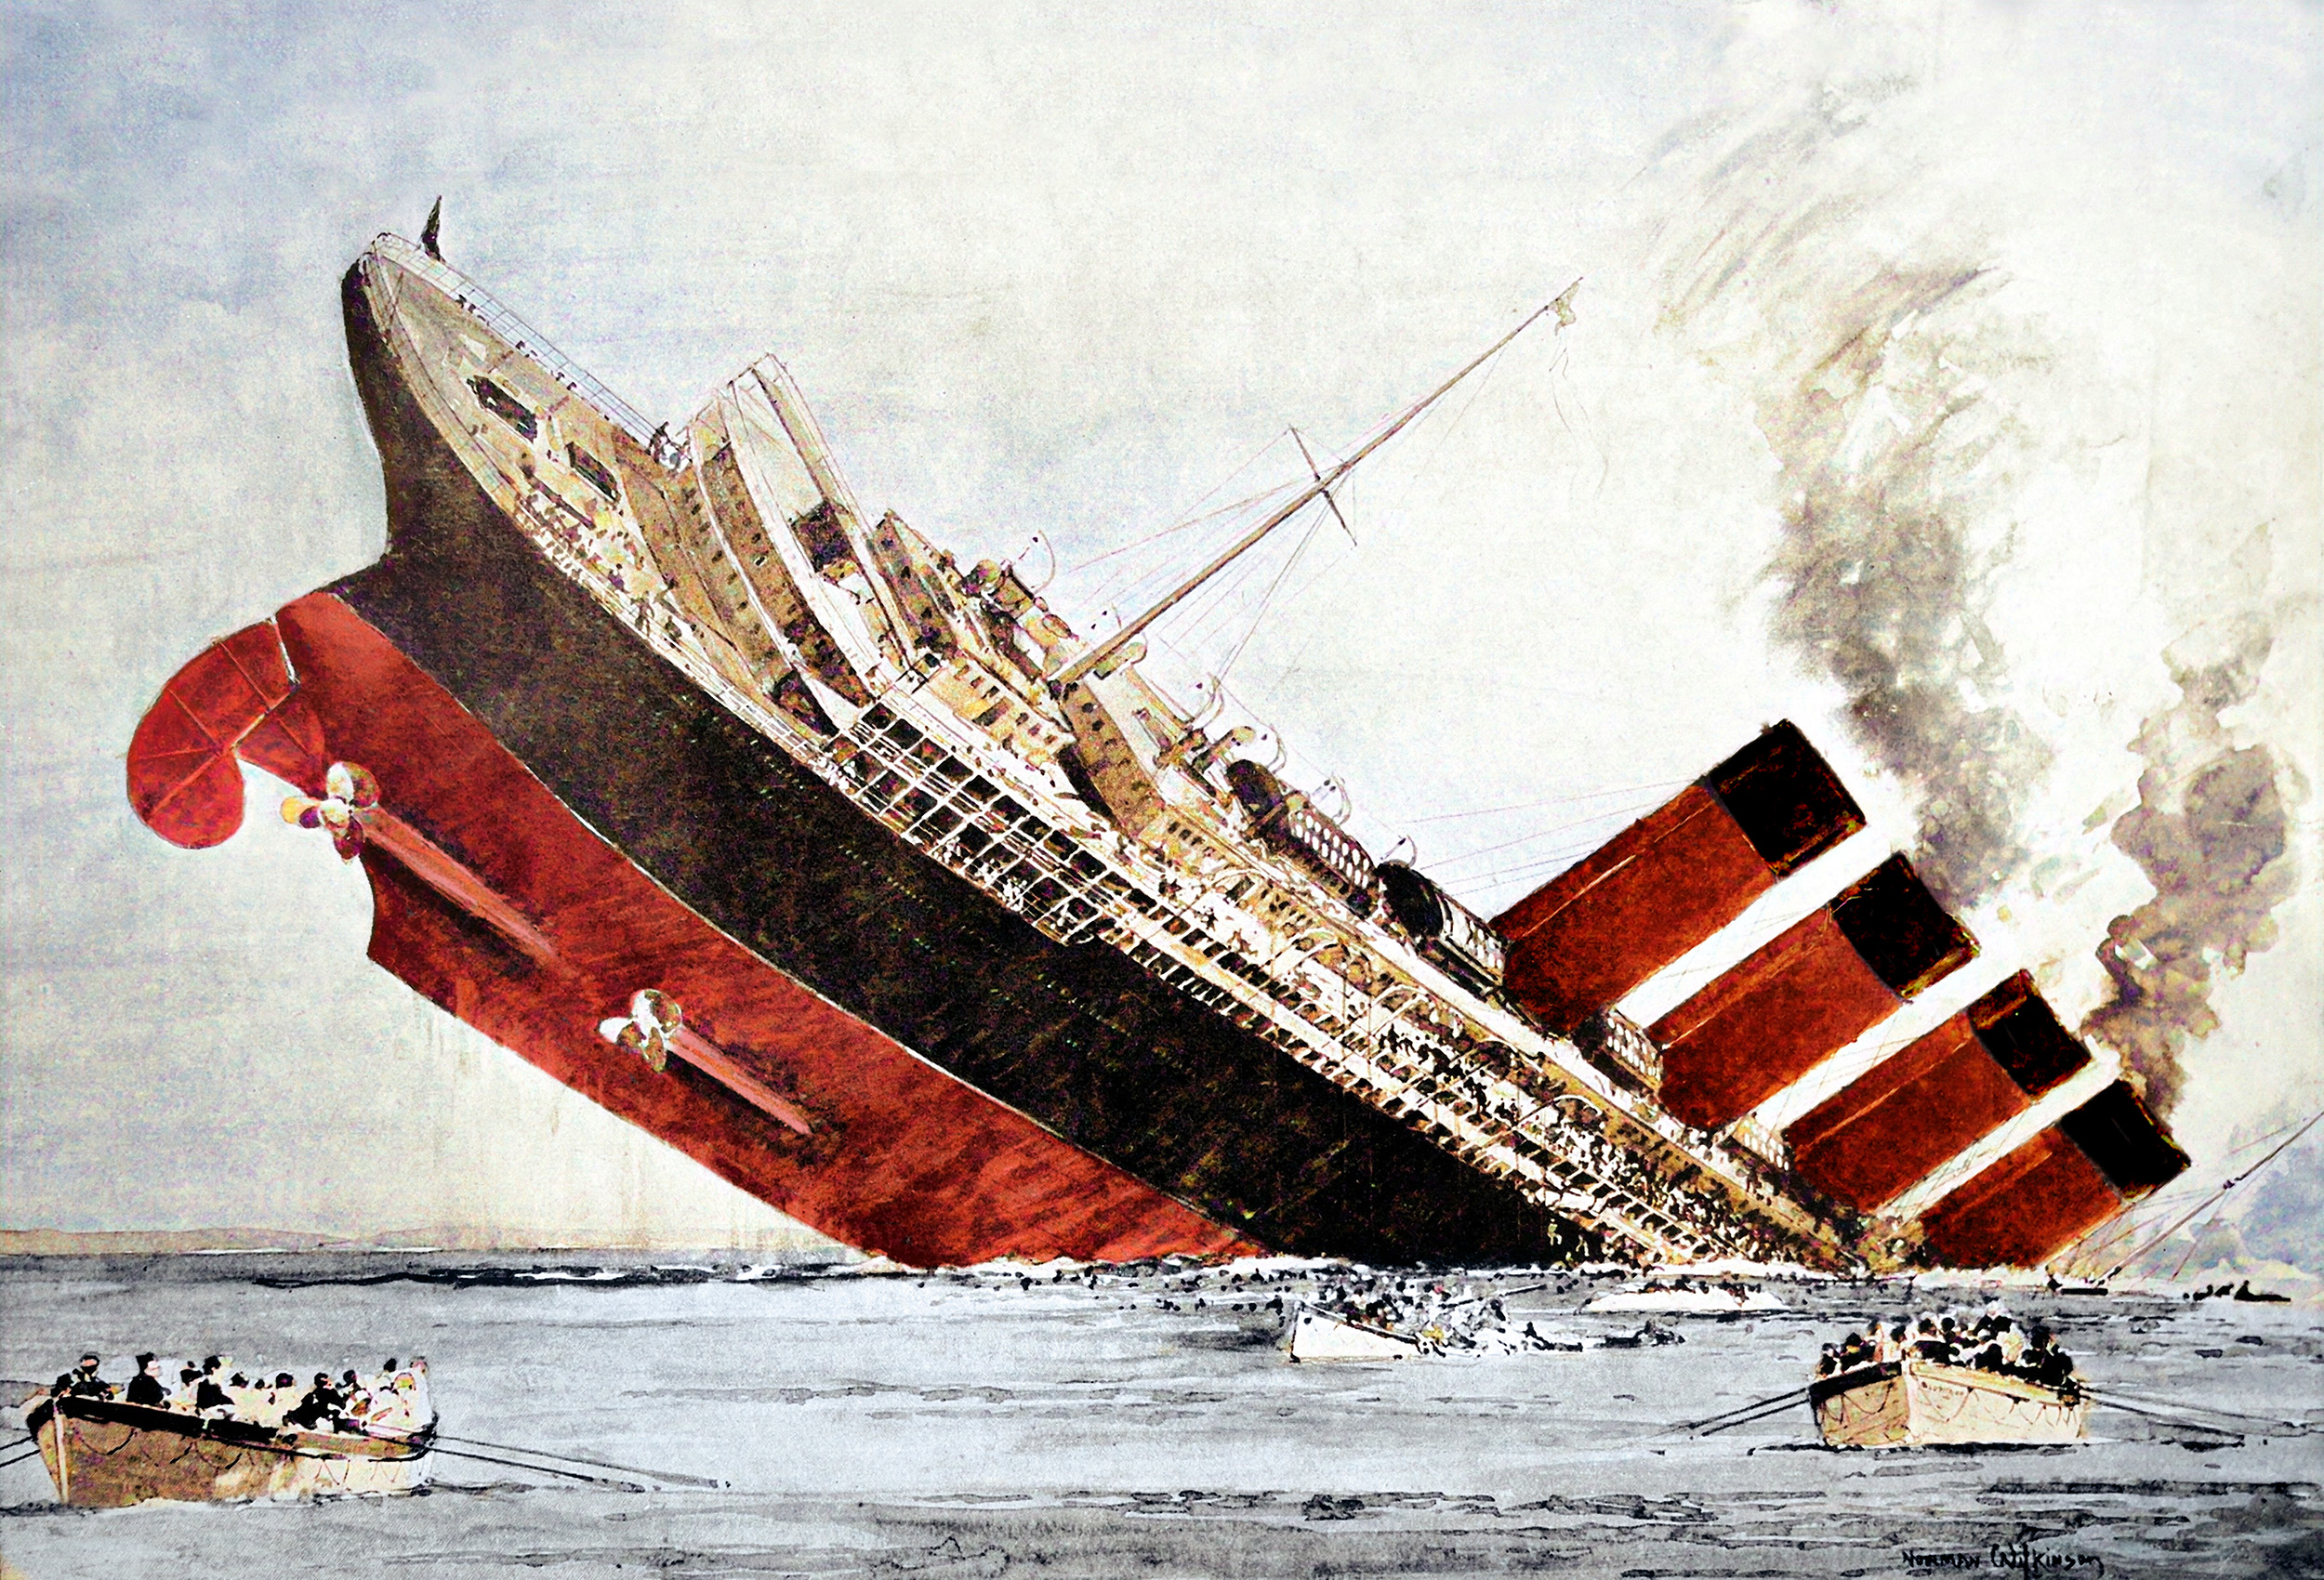 The Lusitania after being torpedoed